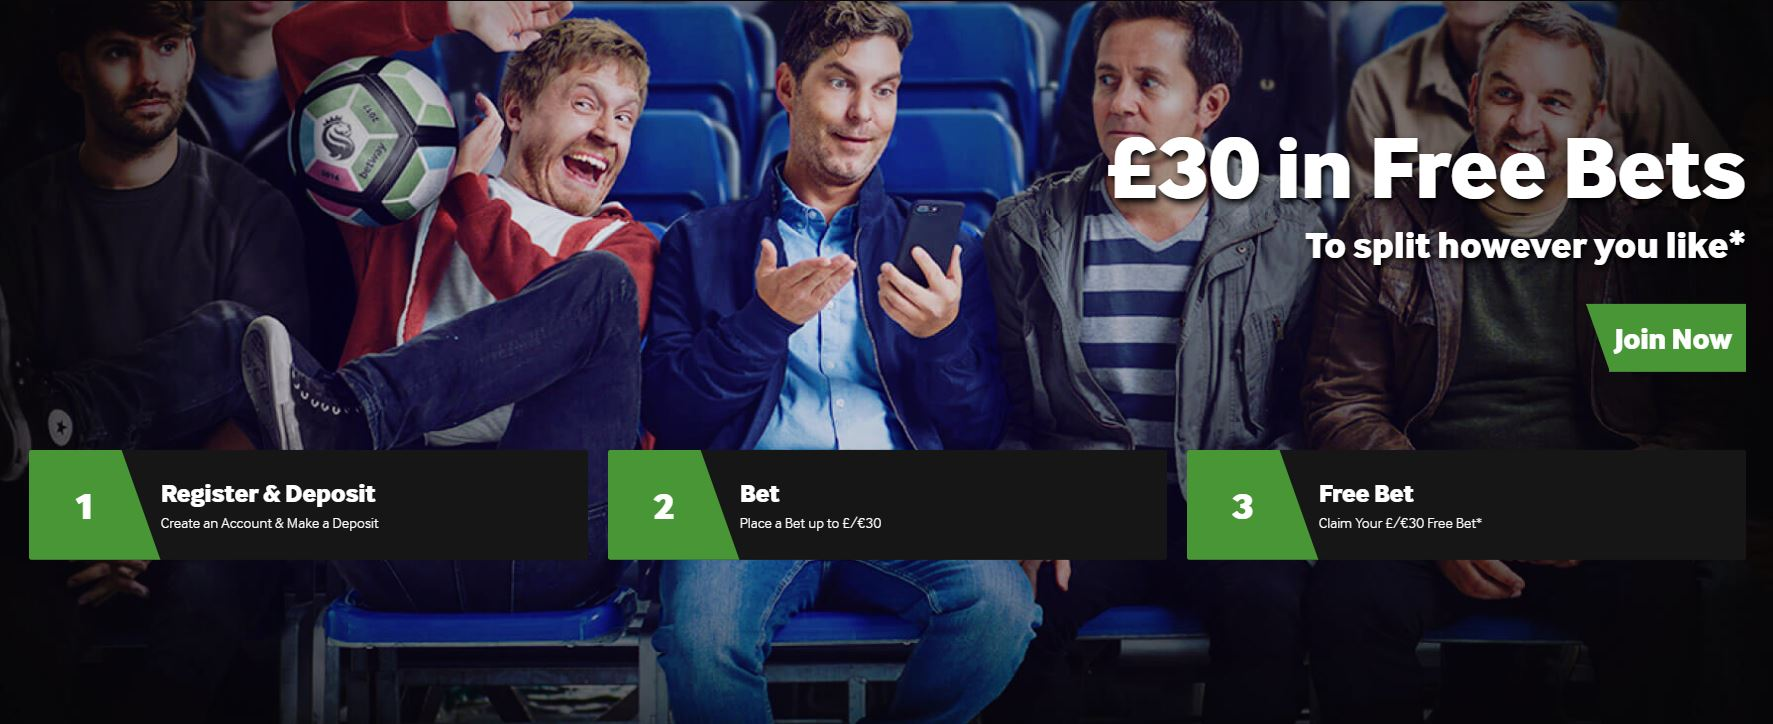 Betway sign up